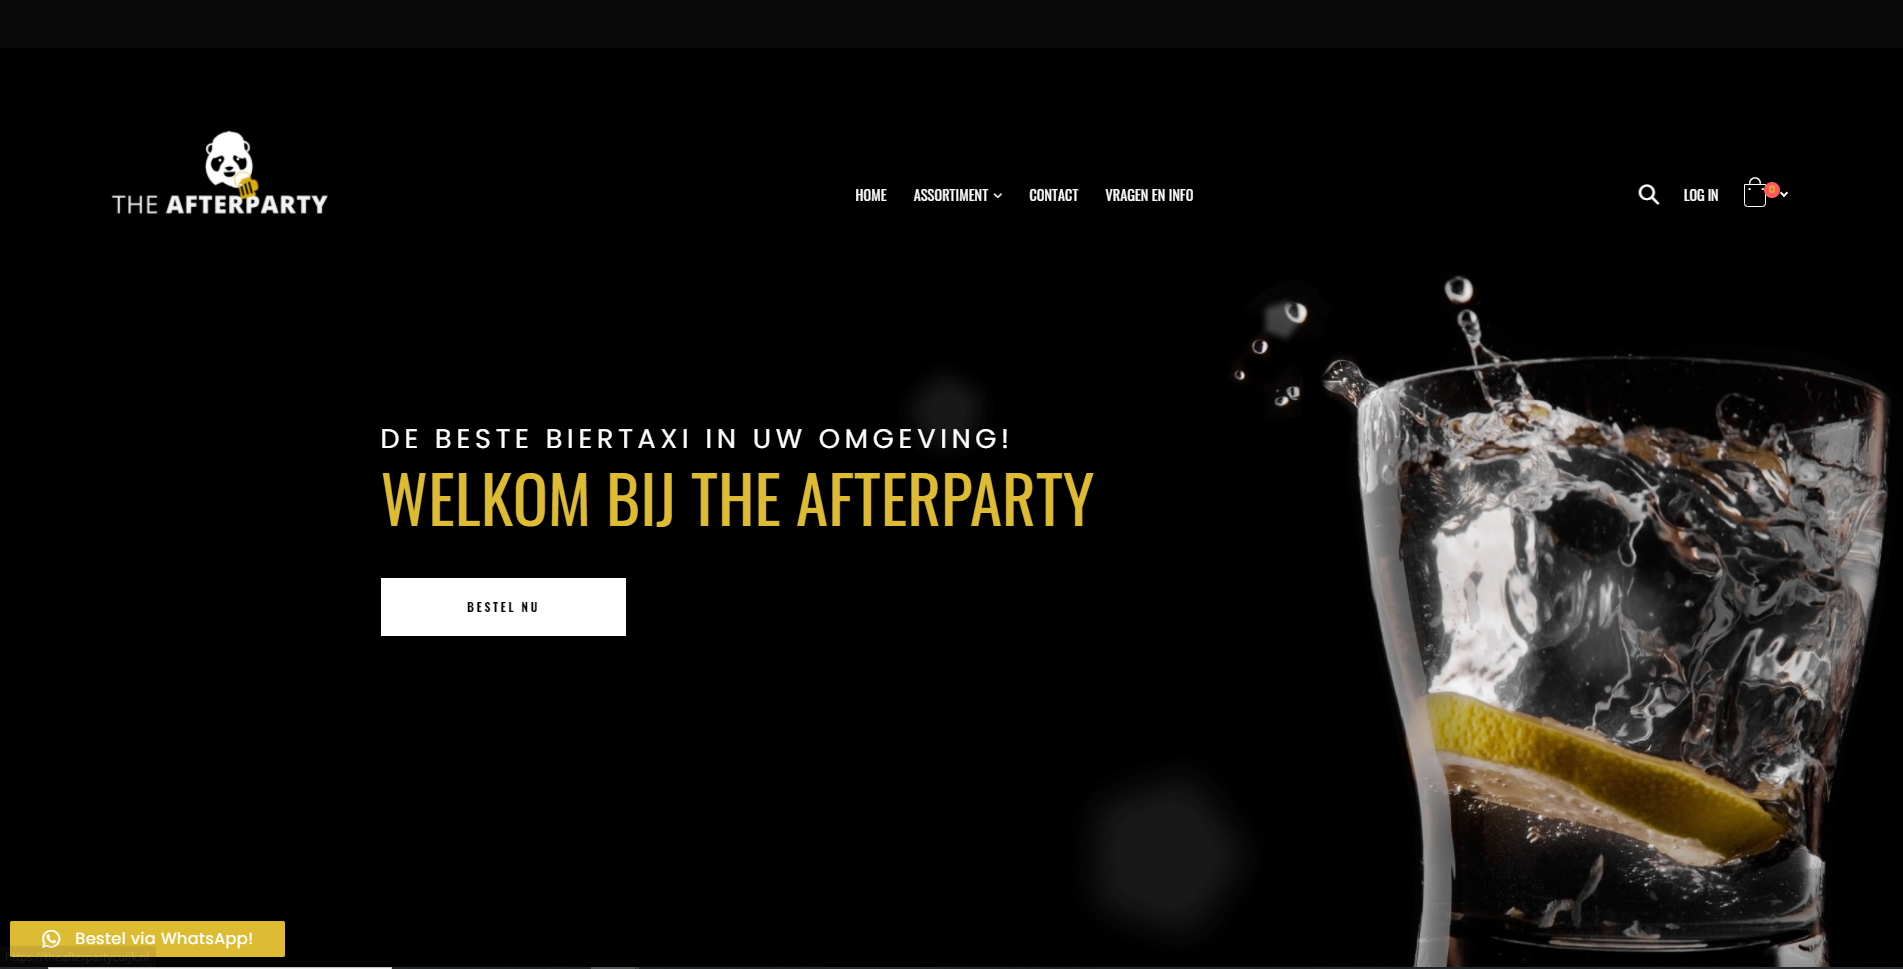 The After Party Cuijk - Biertaxi website